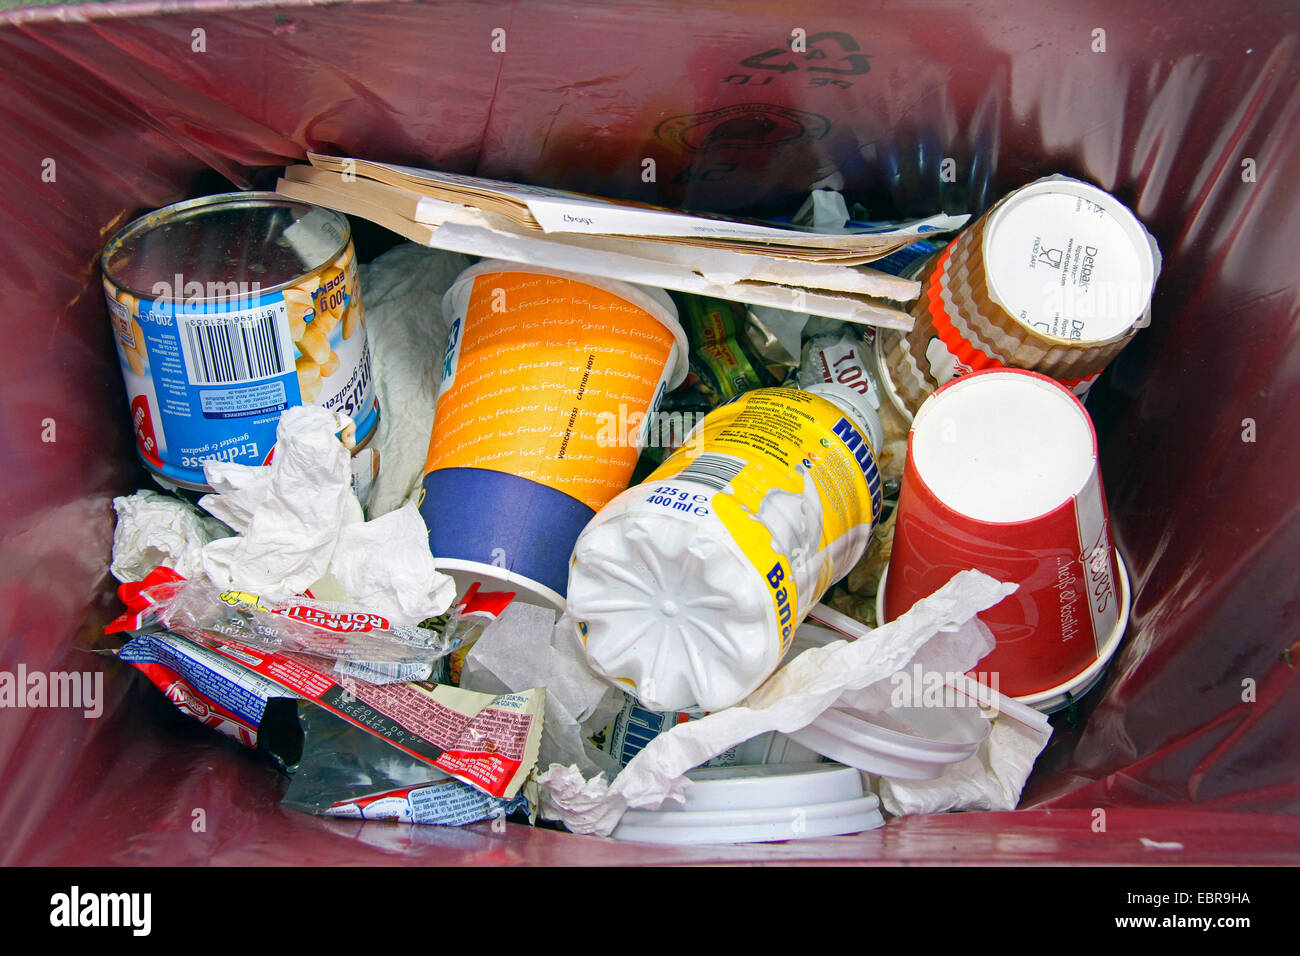 view in a garbage bin on a train plattform, Germany - Stock Image